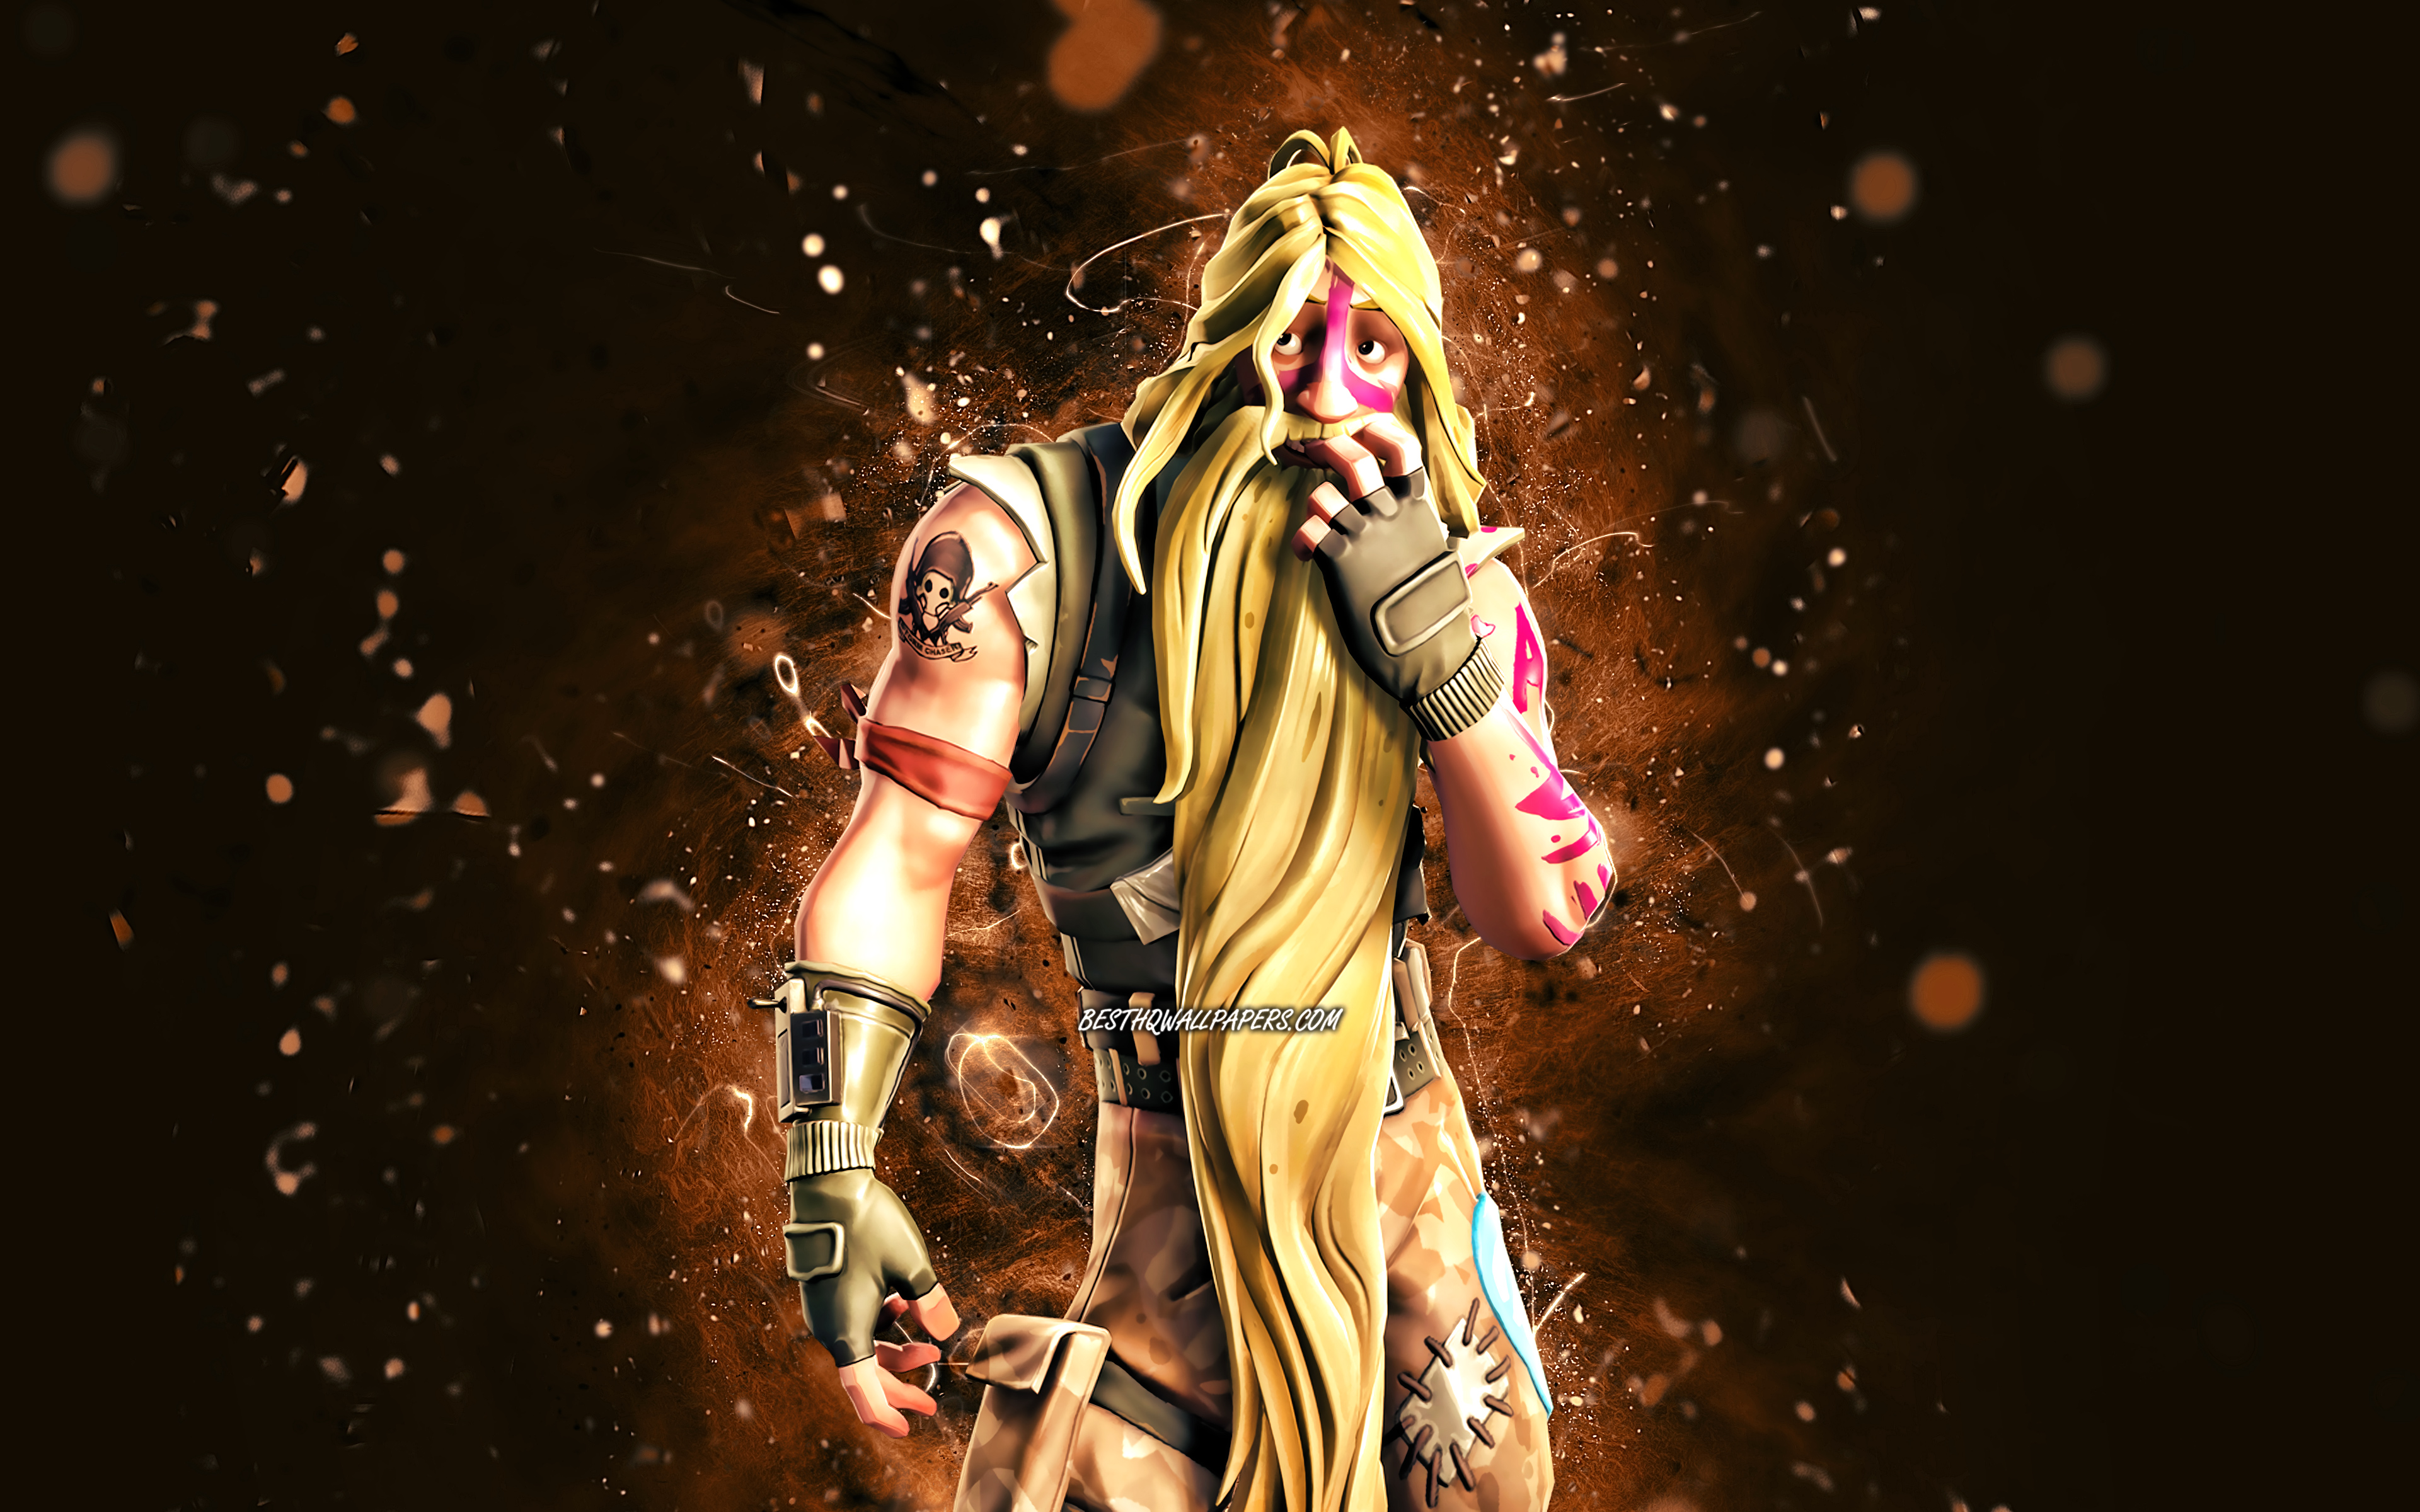 Download Wallpapers Bunker Jonesy 4k Brown Neon Lights Fortnite Battle Royale Fortnite Characters Bunker Jonesy Skin Fortnite Bunker Jonesy Fortnite For Desktop With Resolution 3840x2400 High Quality Hd Pictures Wallpapers